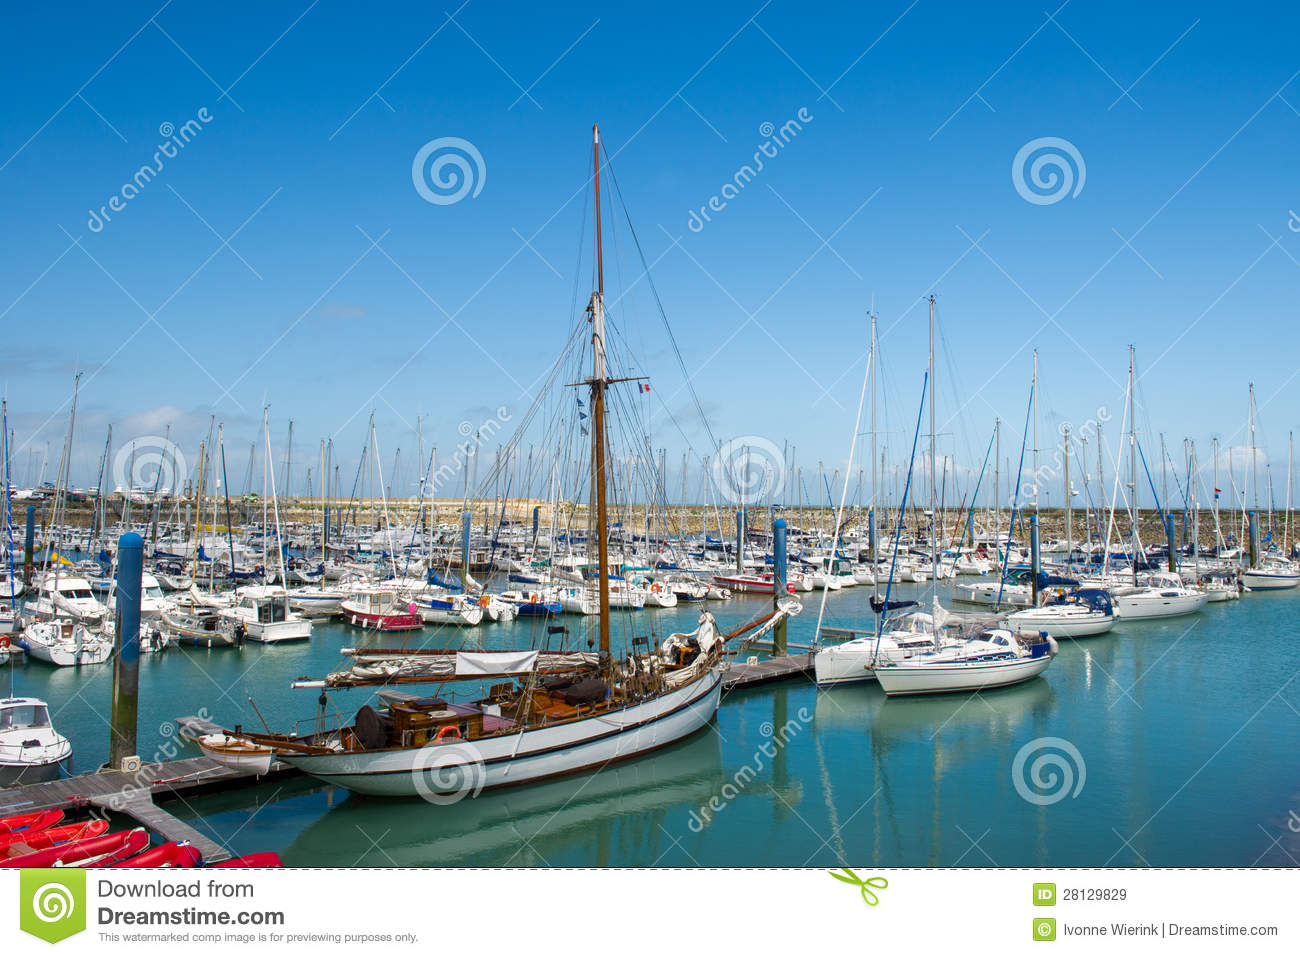 Island Oleron in France with yachts in harbor